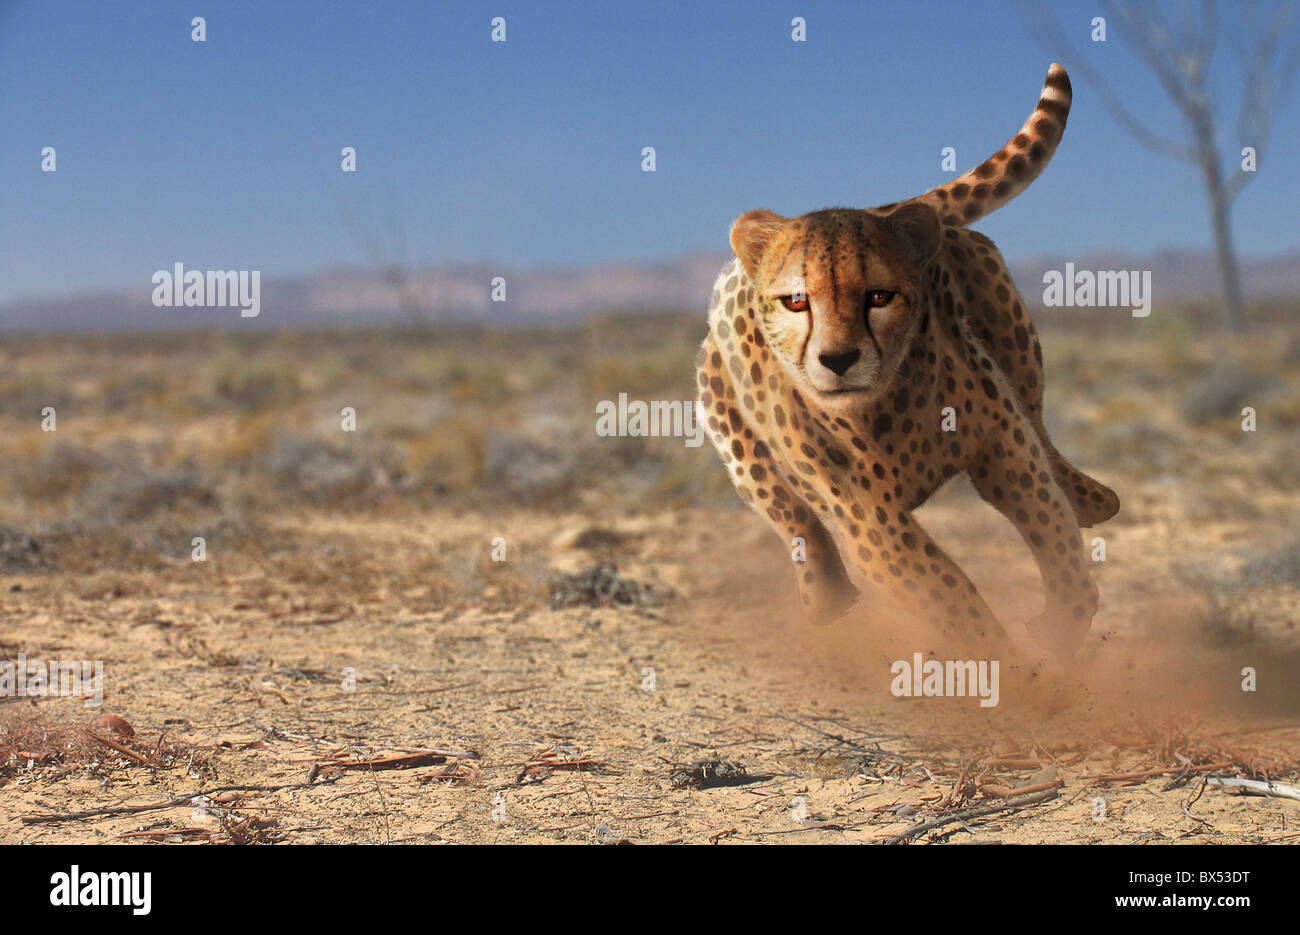 Cheetah running, artwork - Stock Image